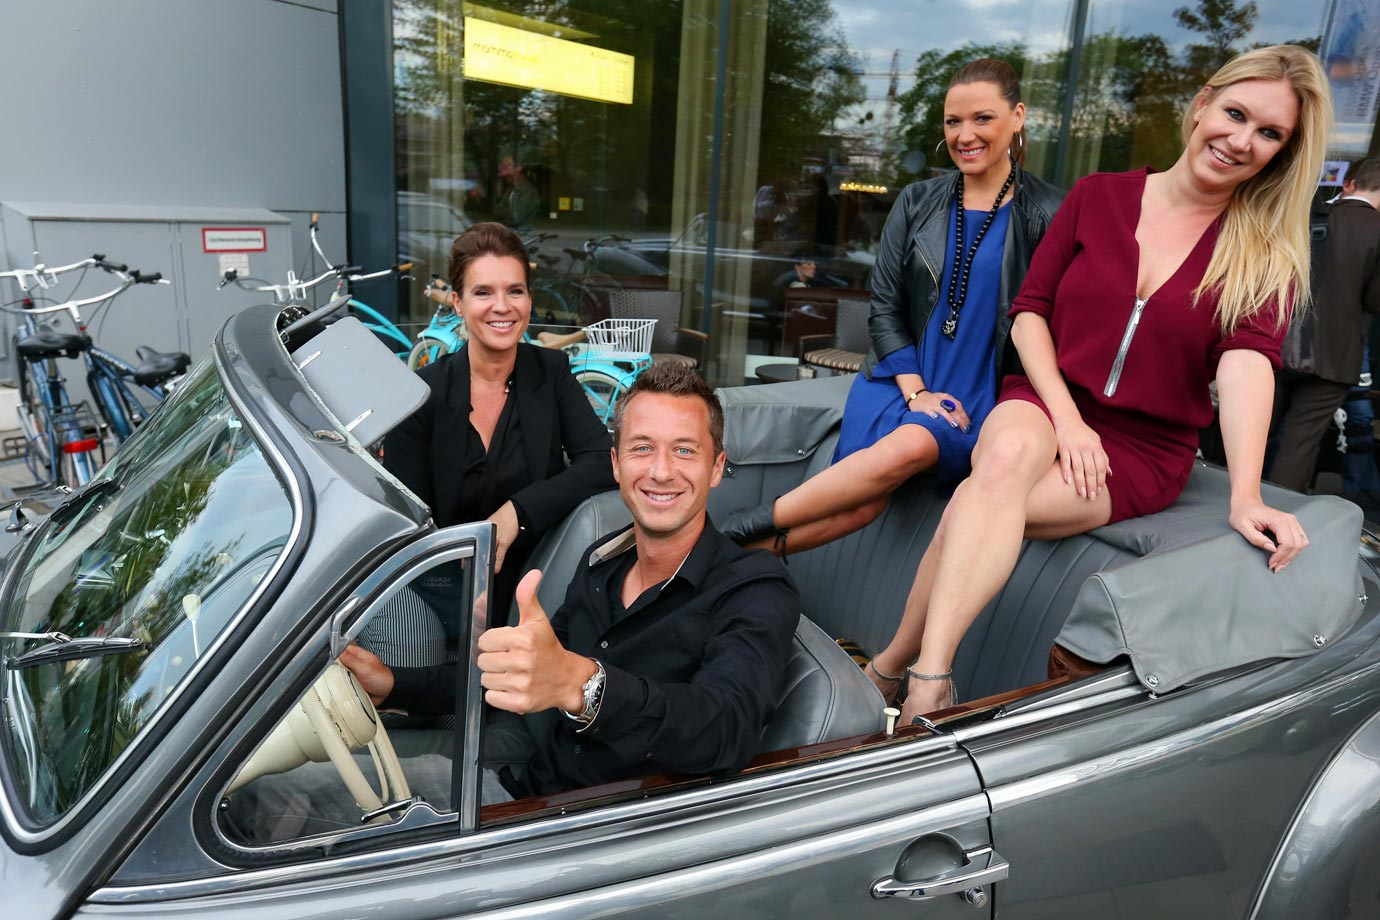 Katarina Witt, tennis star Philipp Kohlschreiber, Simone Ballack and Magdalena Brzeska sit in a historical BMW at the Iphitos Tennis Club 100 years celebration prior to the BMW Open in Munich.